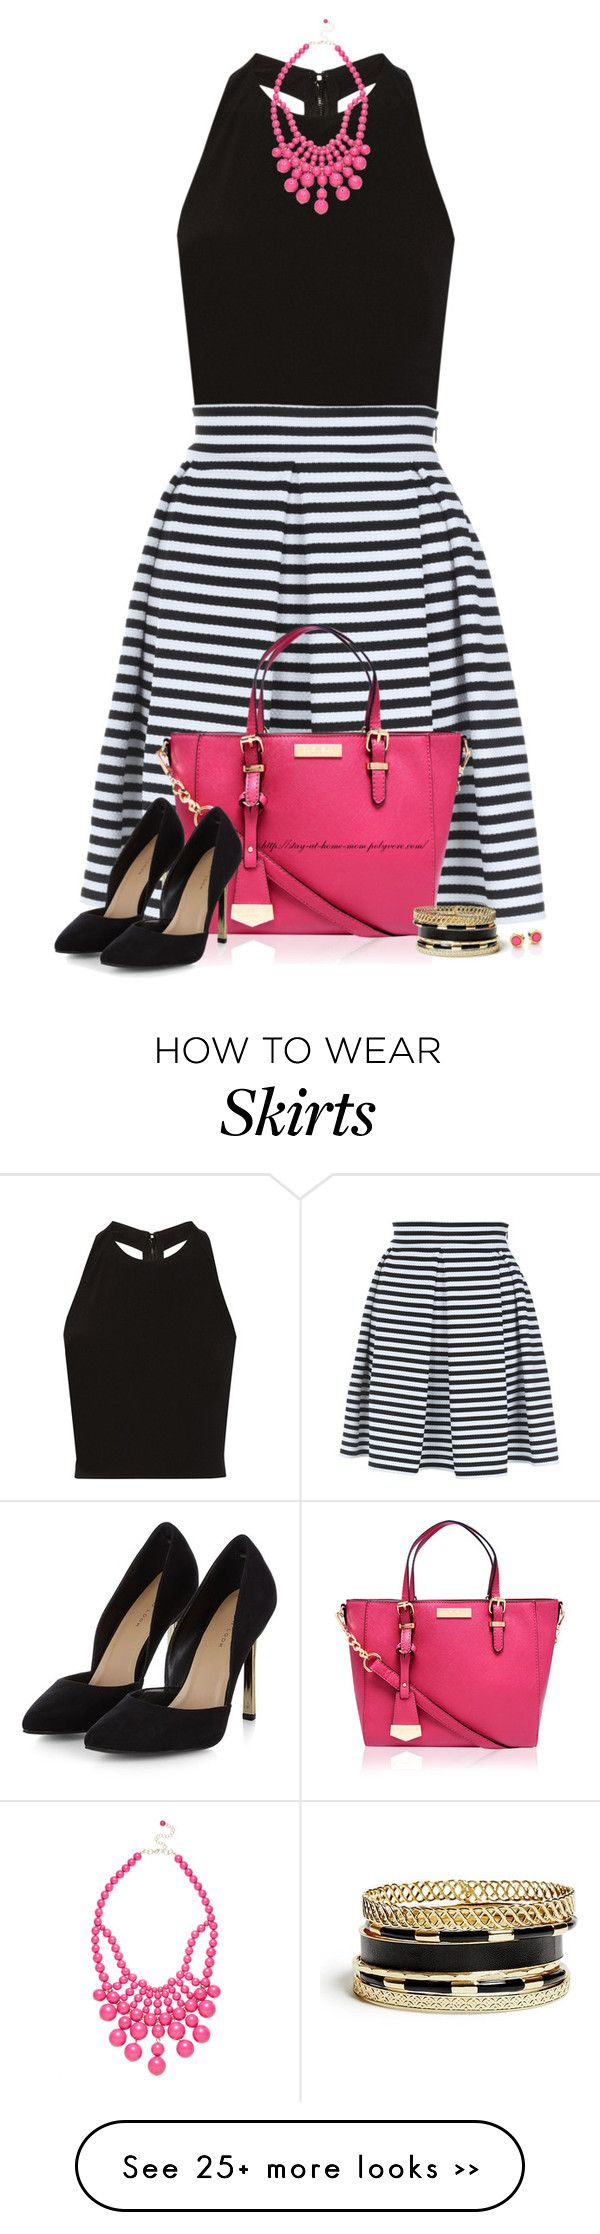 """""""Striped Skater Skirt"""" by stay-at-home-mom on Polyvore featuring Alice + Olivia, Jane Norman, Ashley Stewart, Carvela Kurt Geiger, Marc by Marc Jacobs and GUESS"""